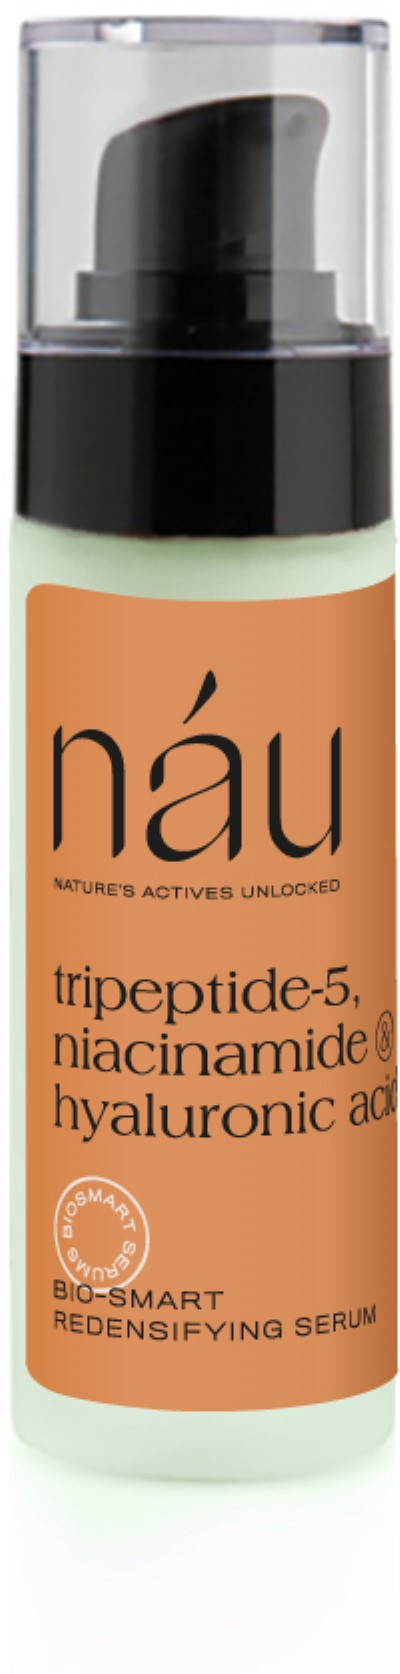 nau Bio-smart Redensifying Serum